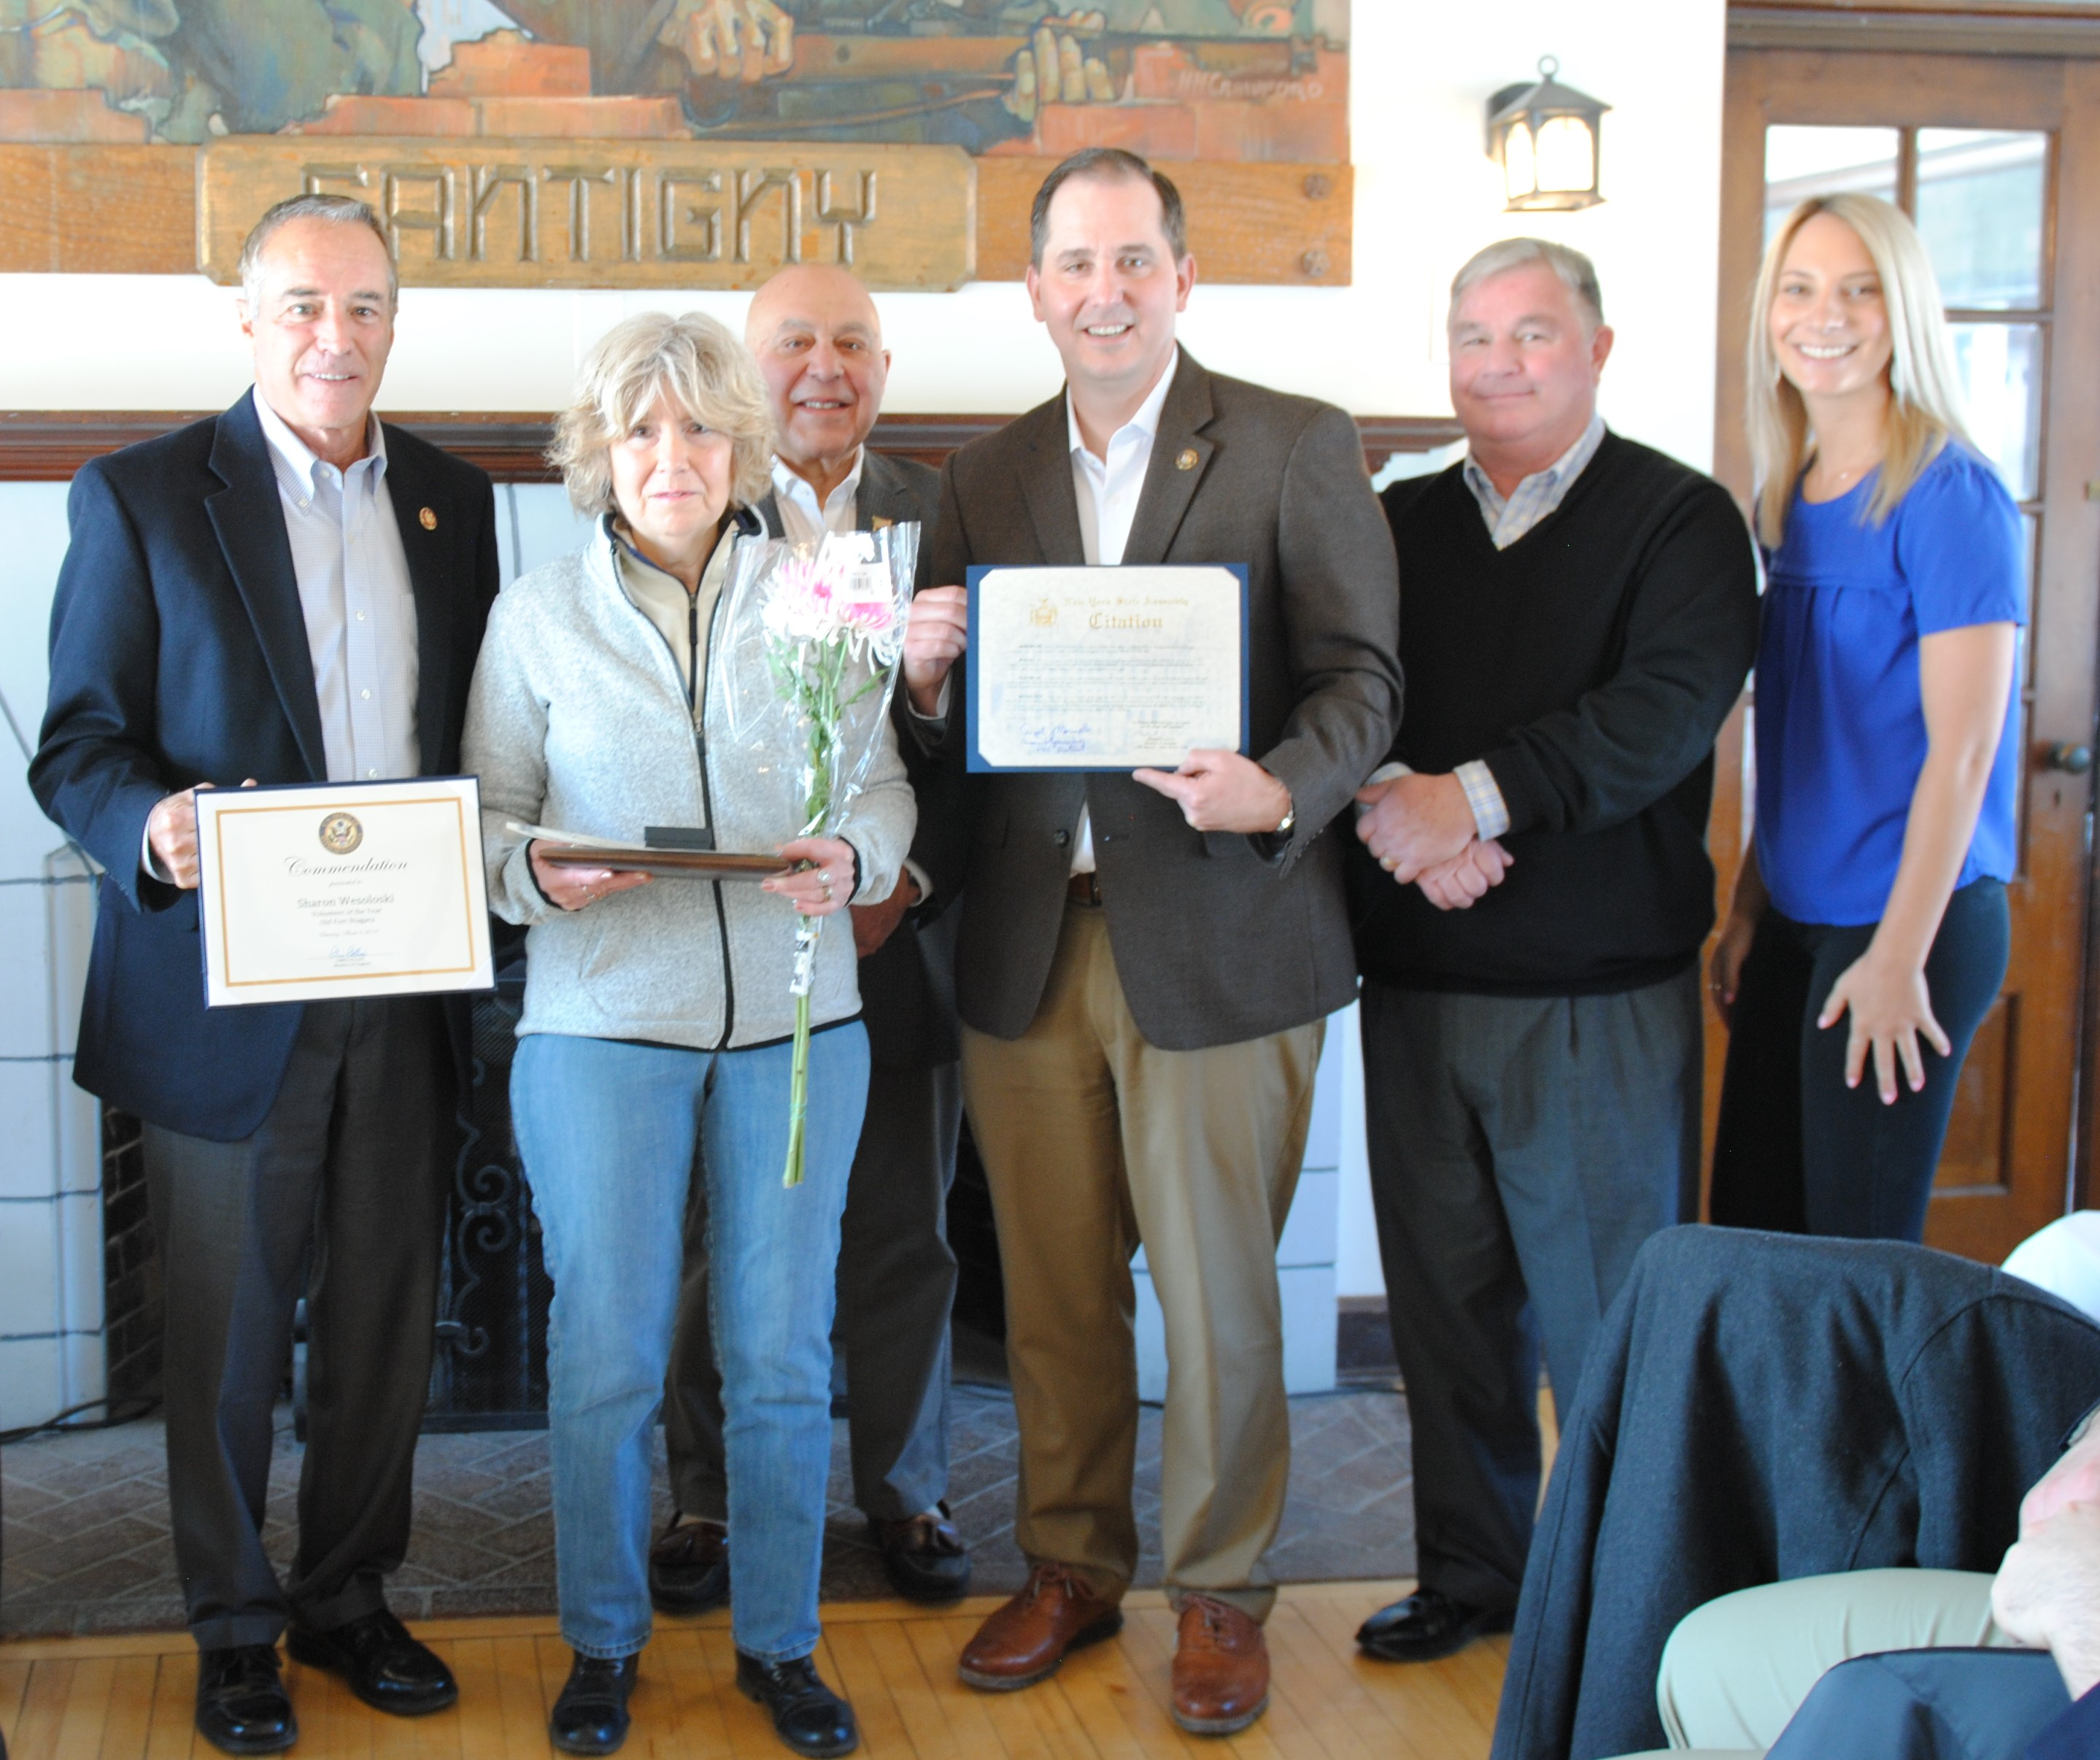 Sharon Wesoloski was named Old Fort Niagara Association's 2018 Volunteer of the Year and also received special awards from Congressman Chris Collins and State Assemblyman Mike Norris. State Assemblyman Angelo Morinello, Porter Town Councilman Tim Adamson and the fort's volunteer coordinator, Erika Schrader, are also pictured.